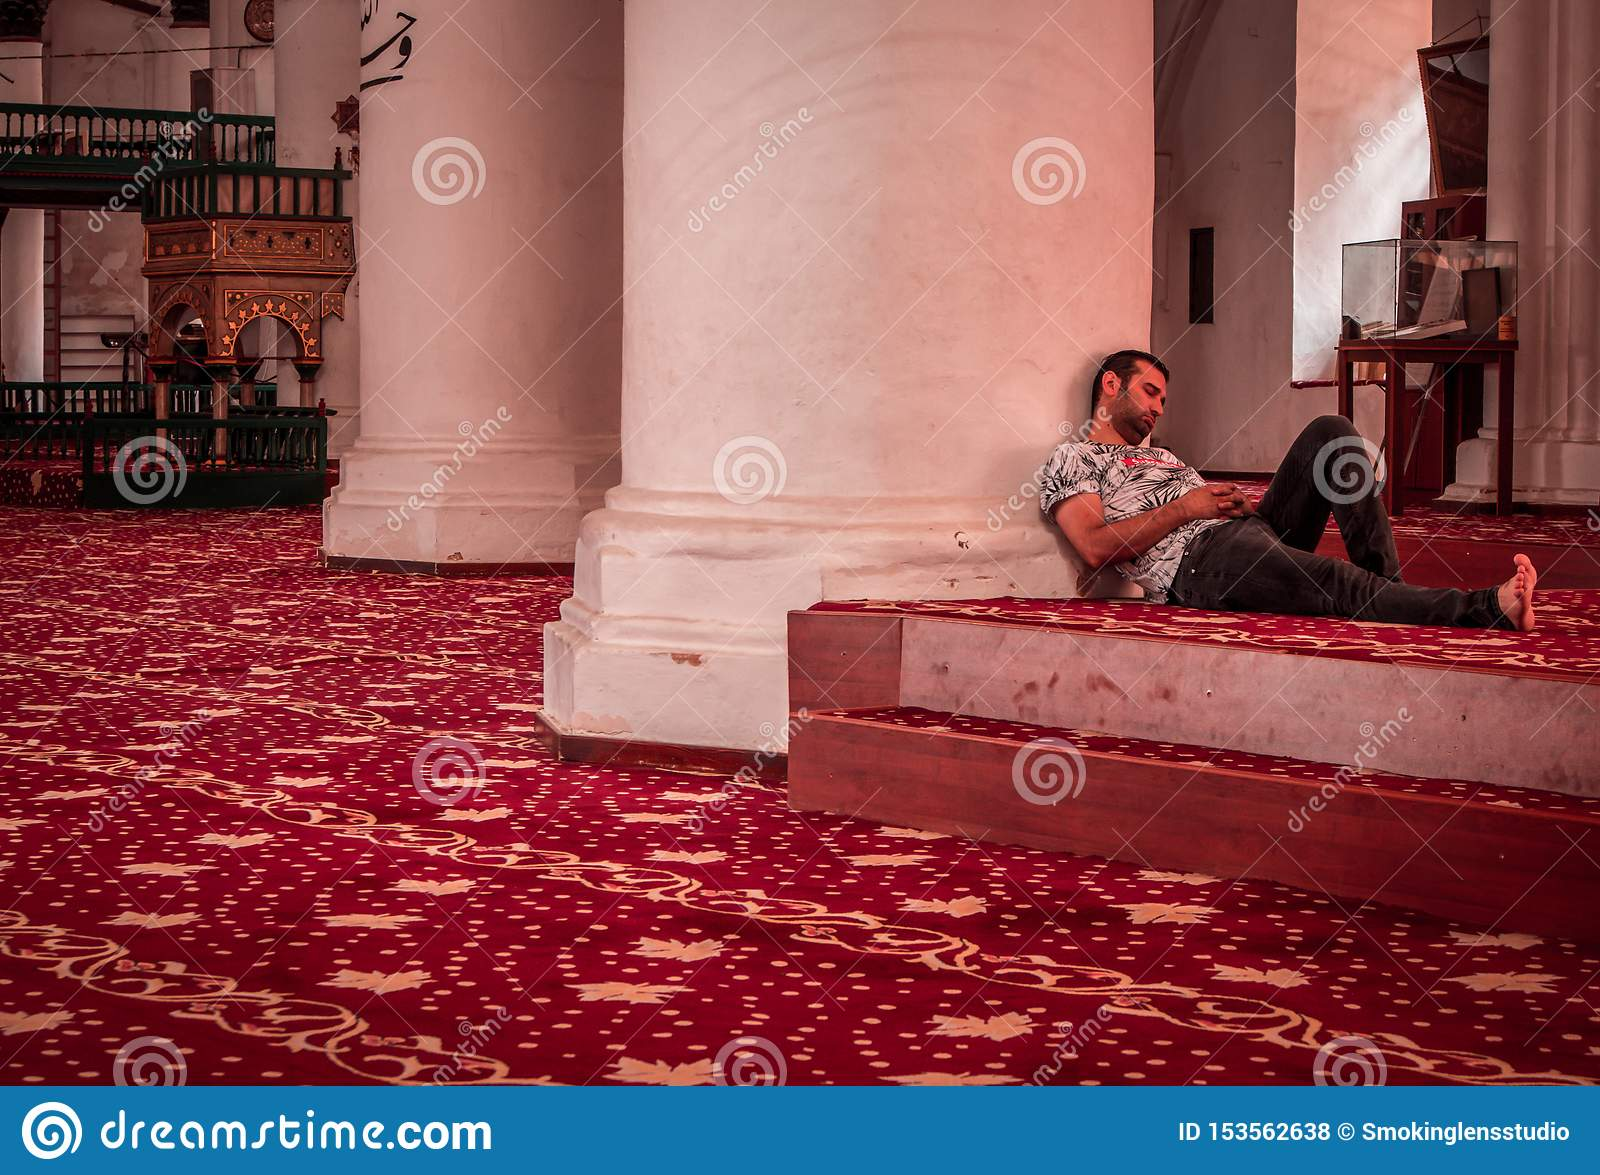 Man sleeping in a mosque, wearing casual